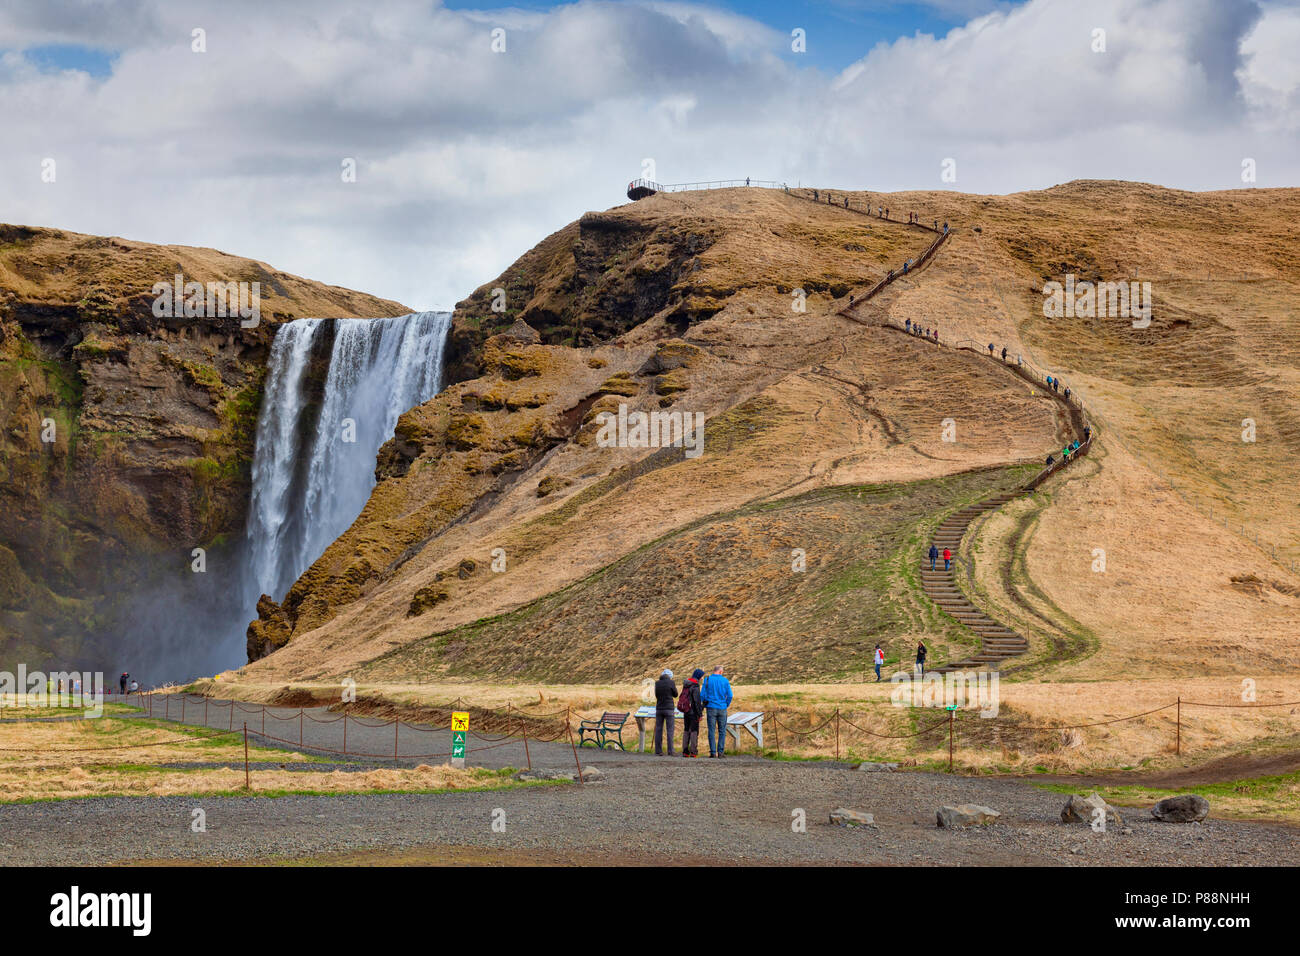 22 April 2018: Skogar, South Iceland - Skogafoss waterfall, and the staircase up to the viewing platform. - Stock Image